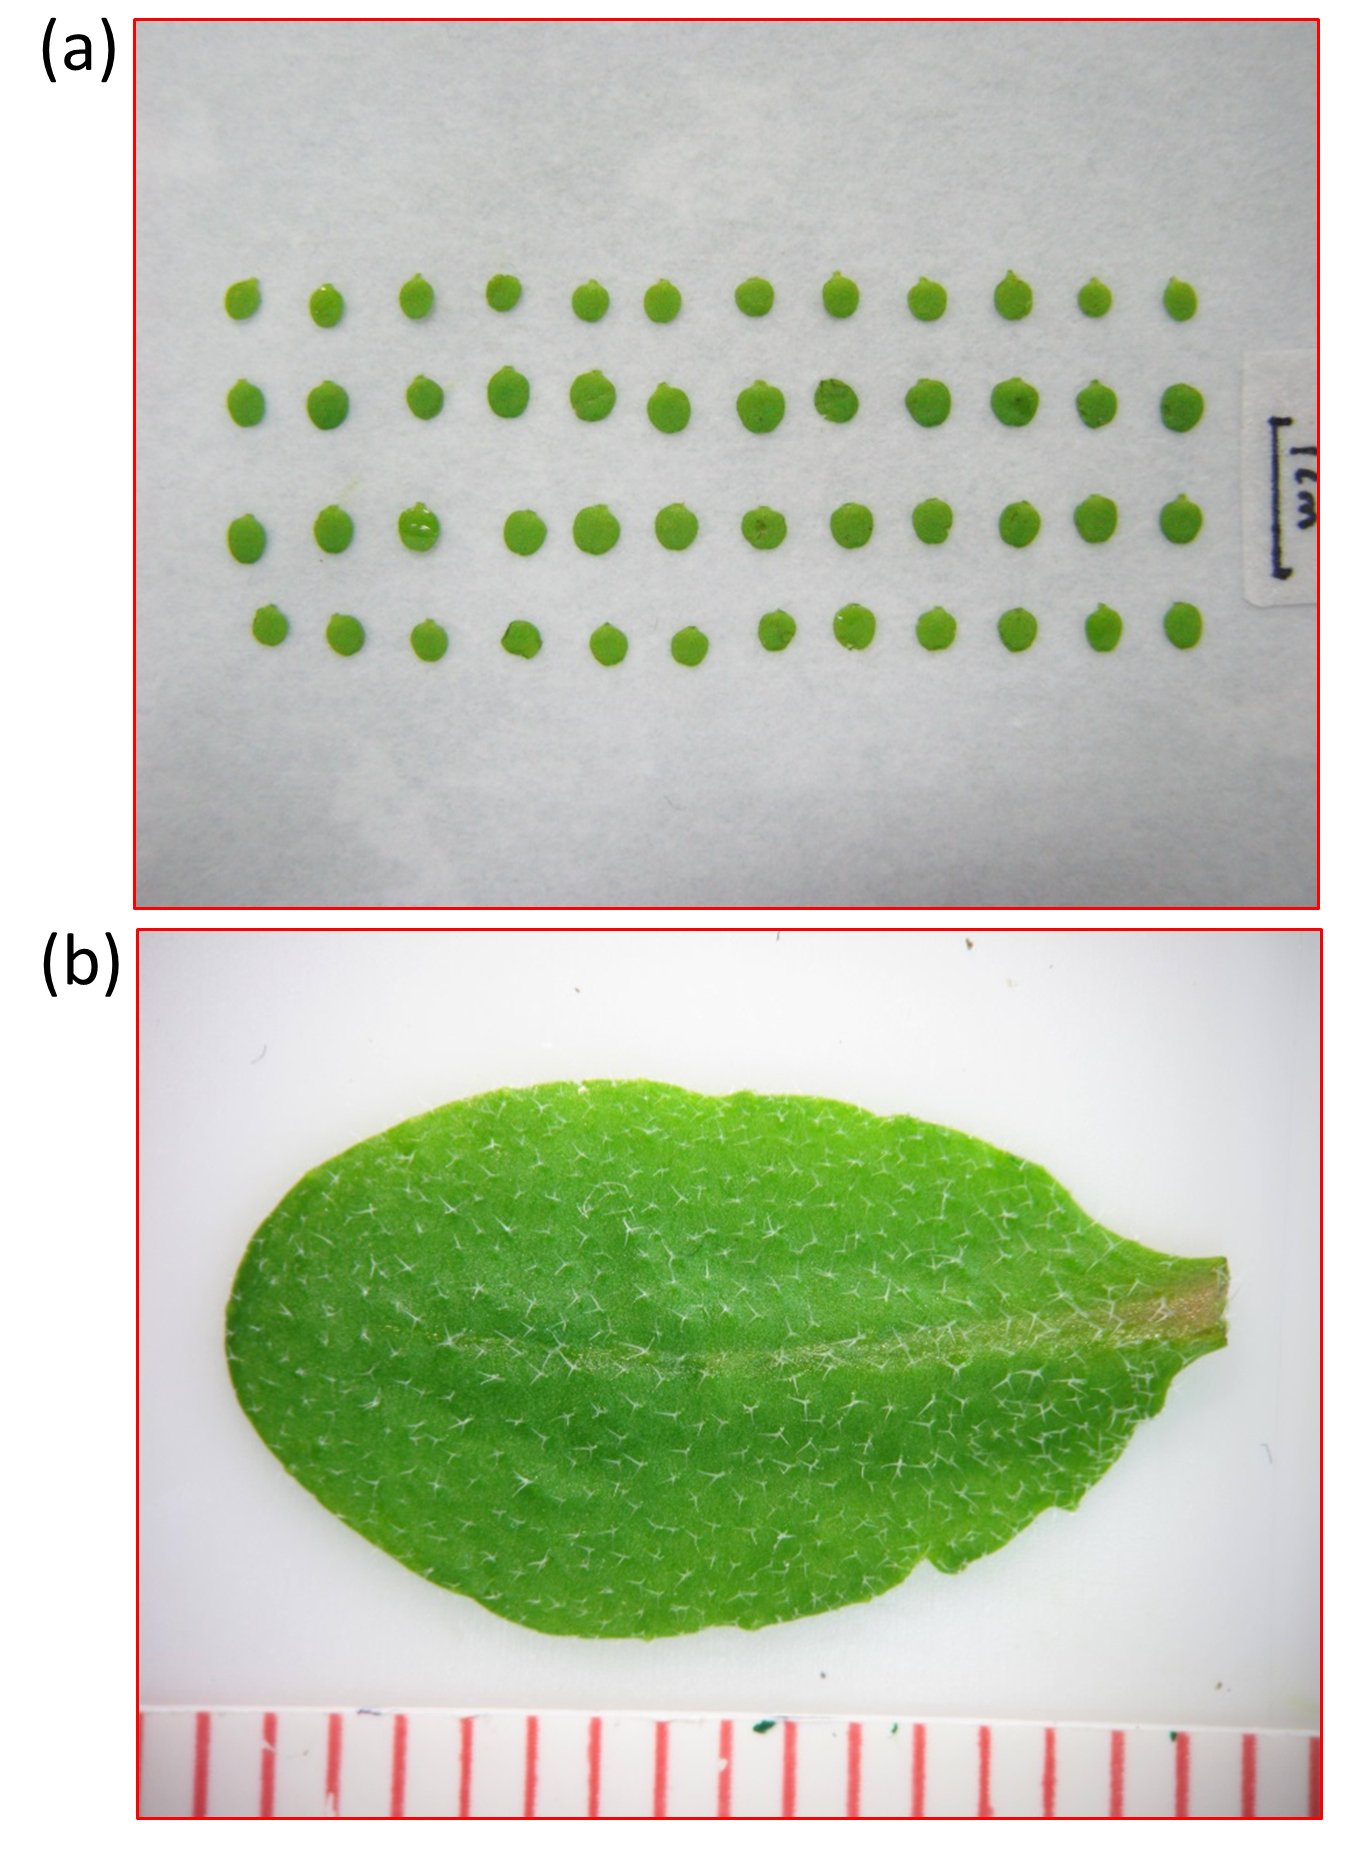 Analyses of Plant Leaf Cell Size, Density and Number, as